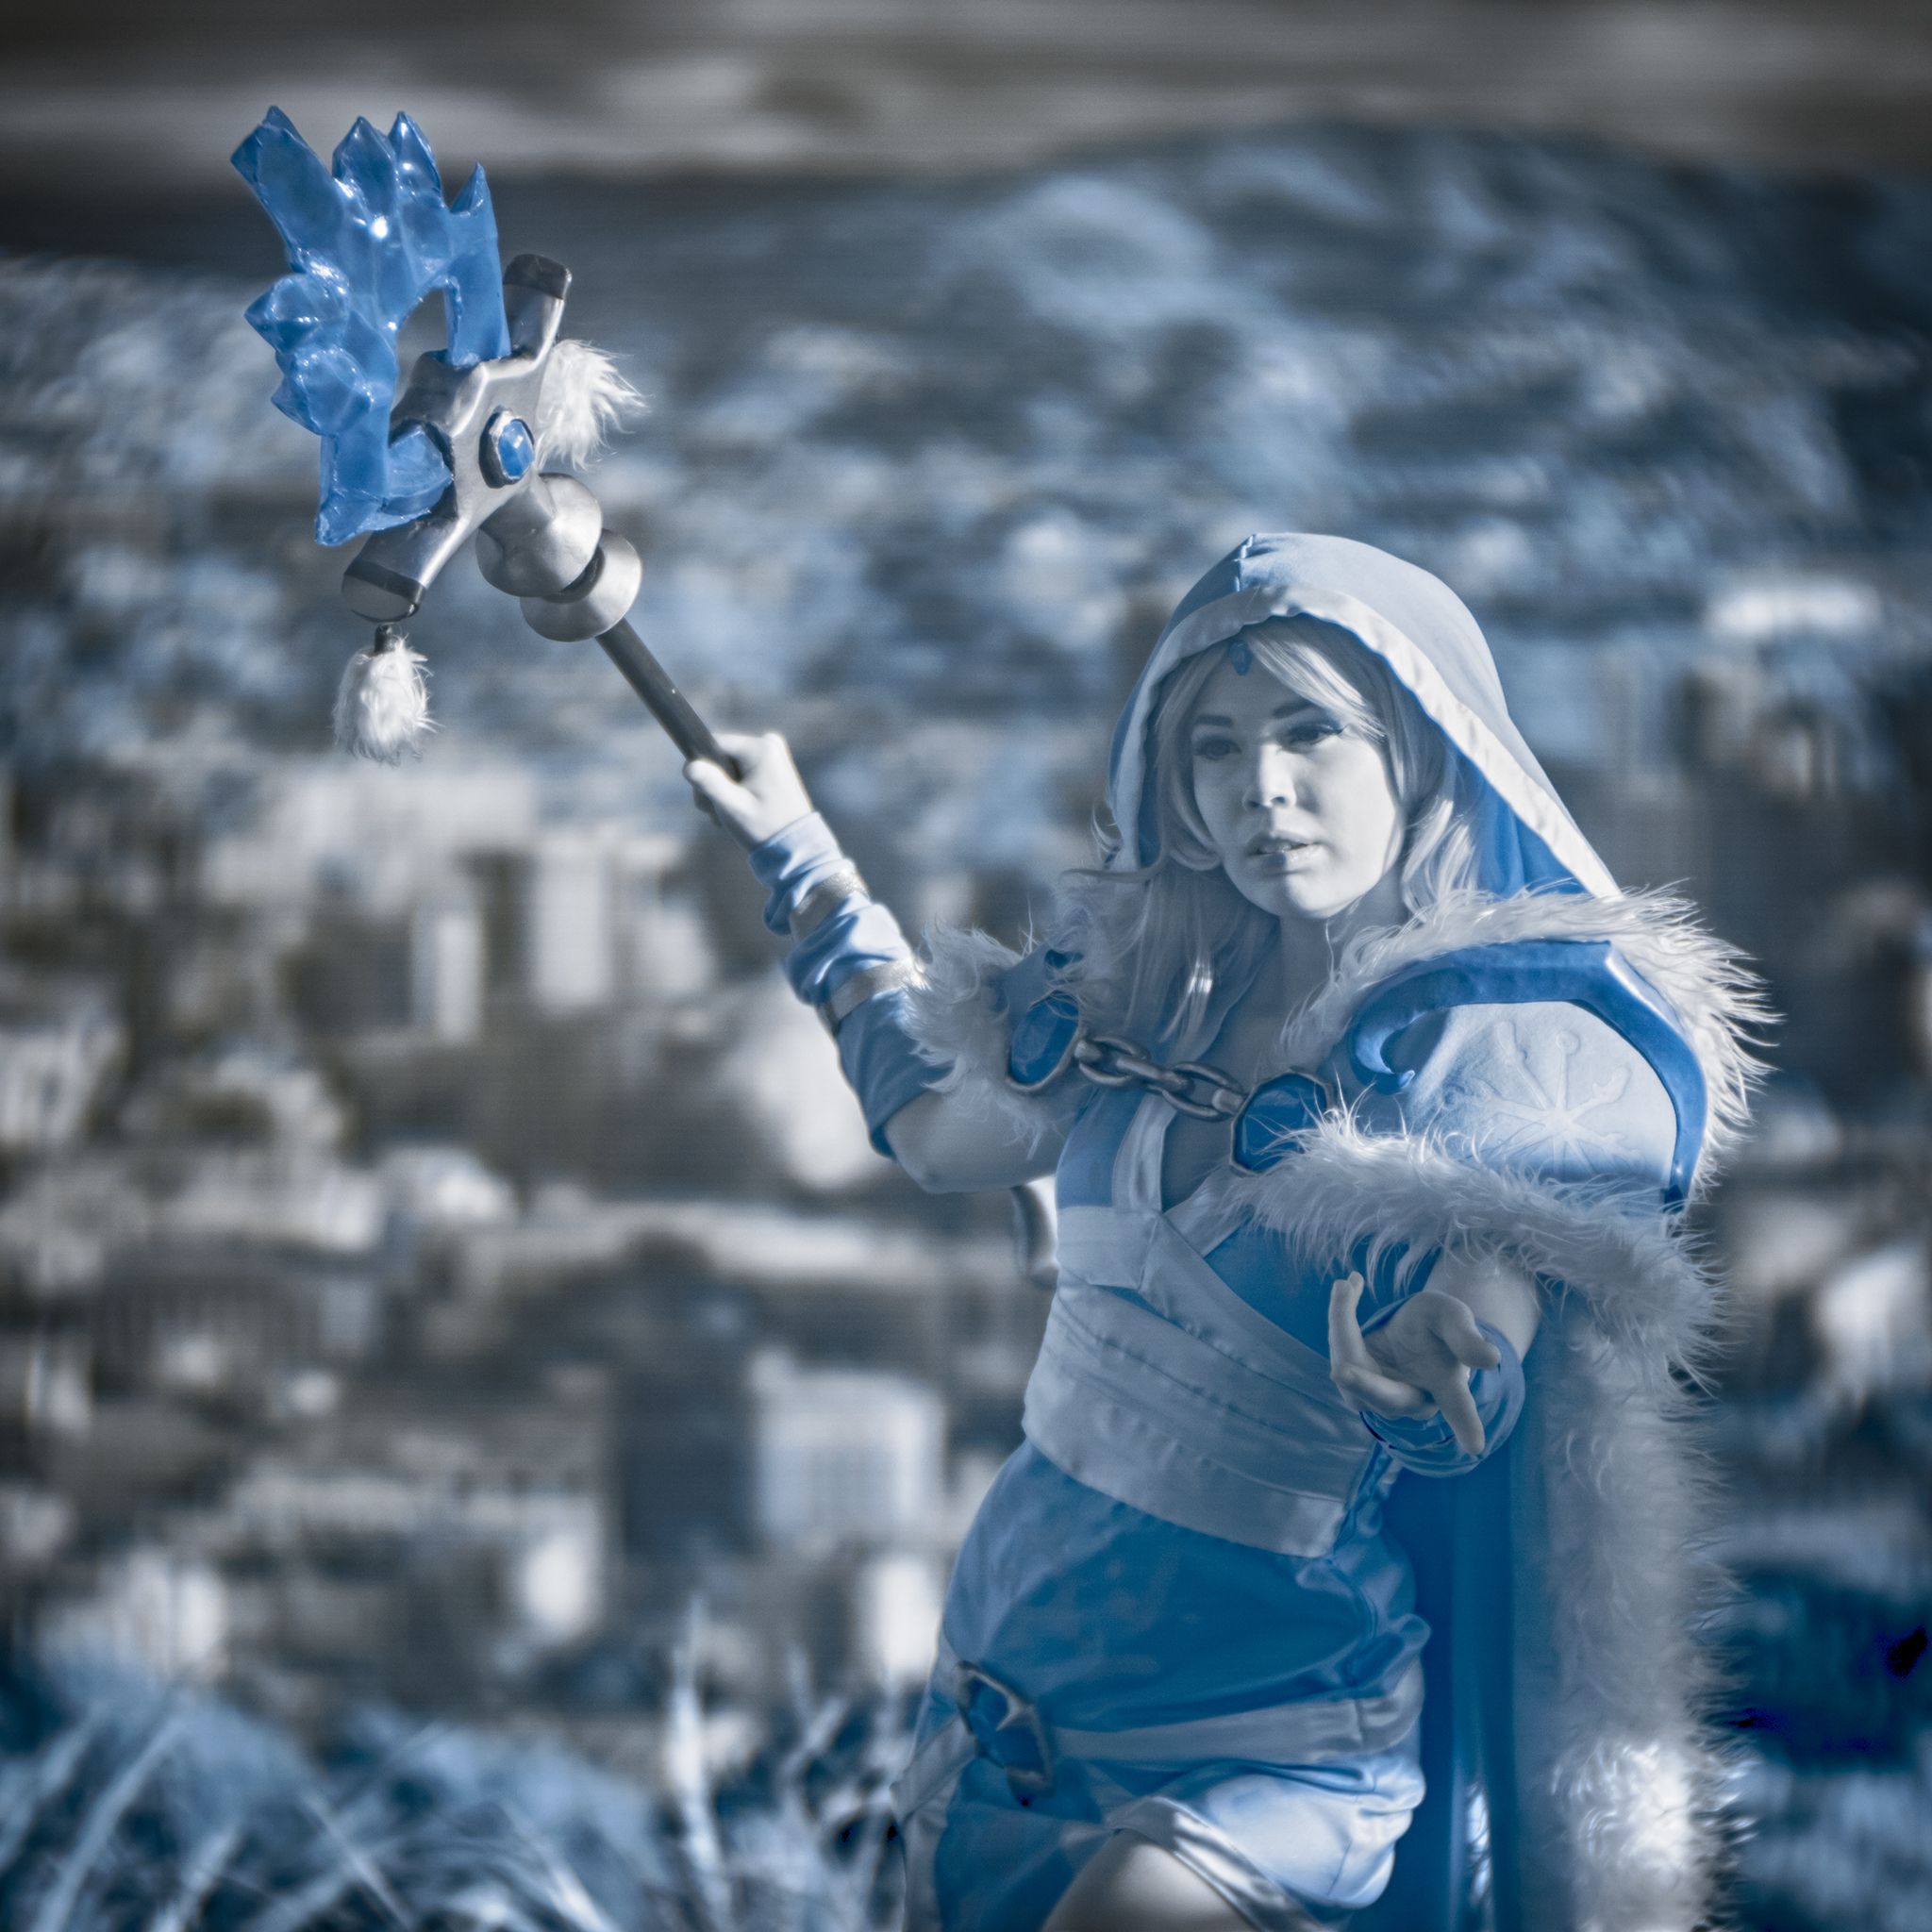 IR camera, Ice maiden